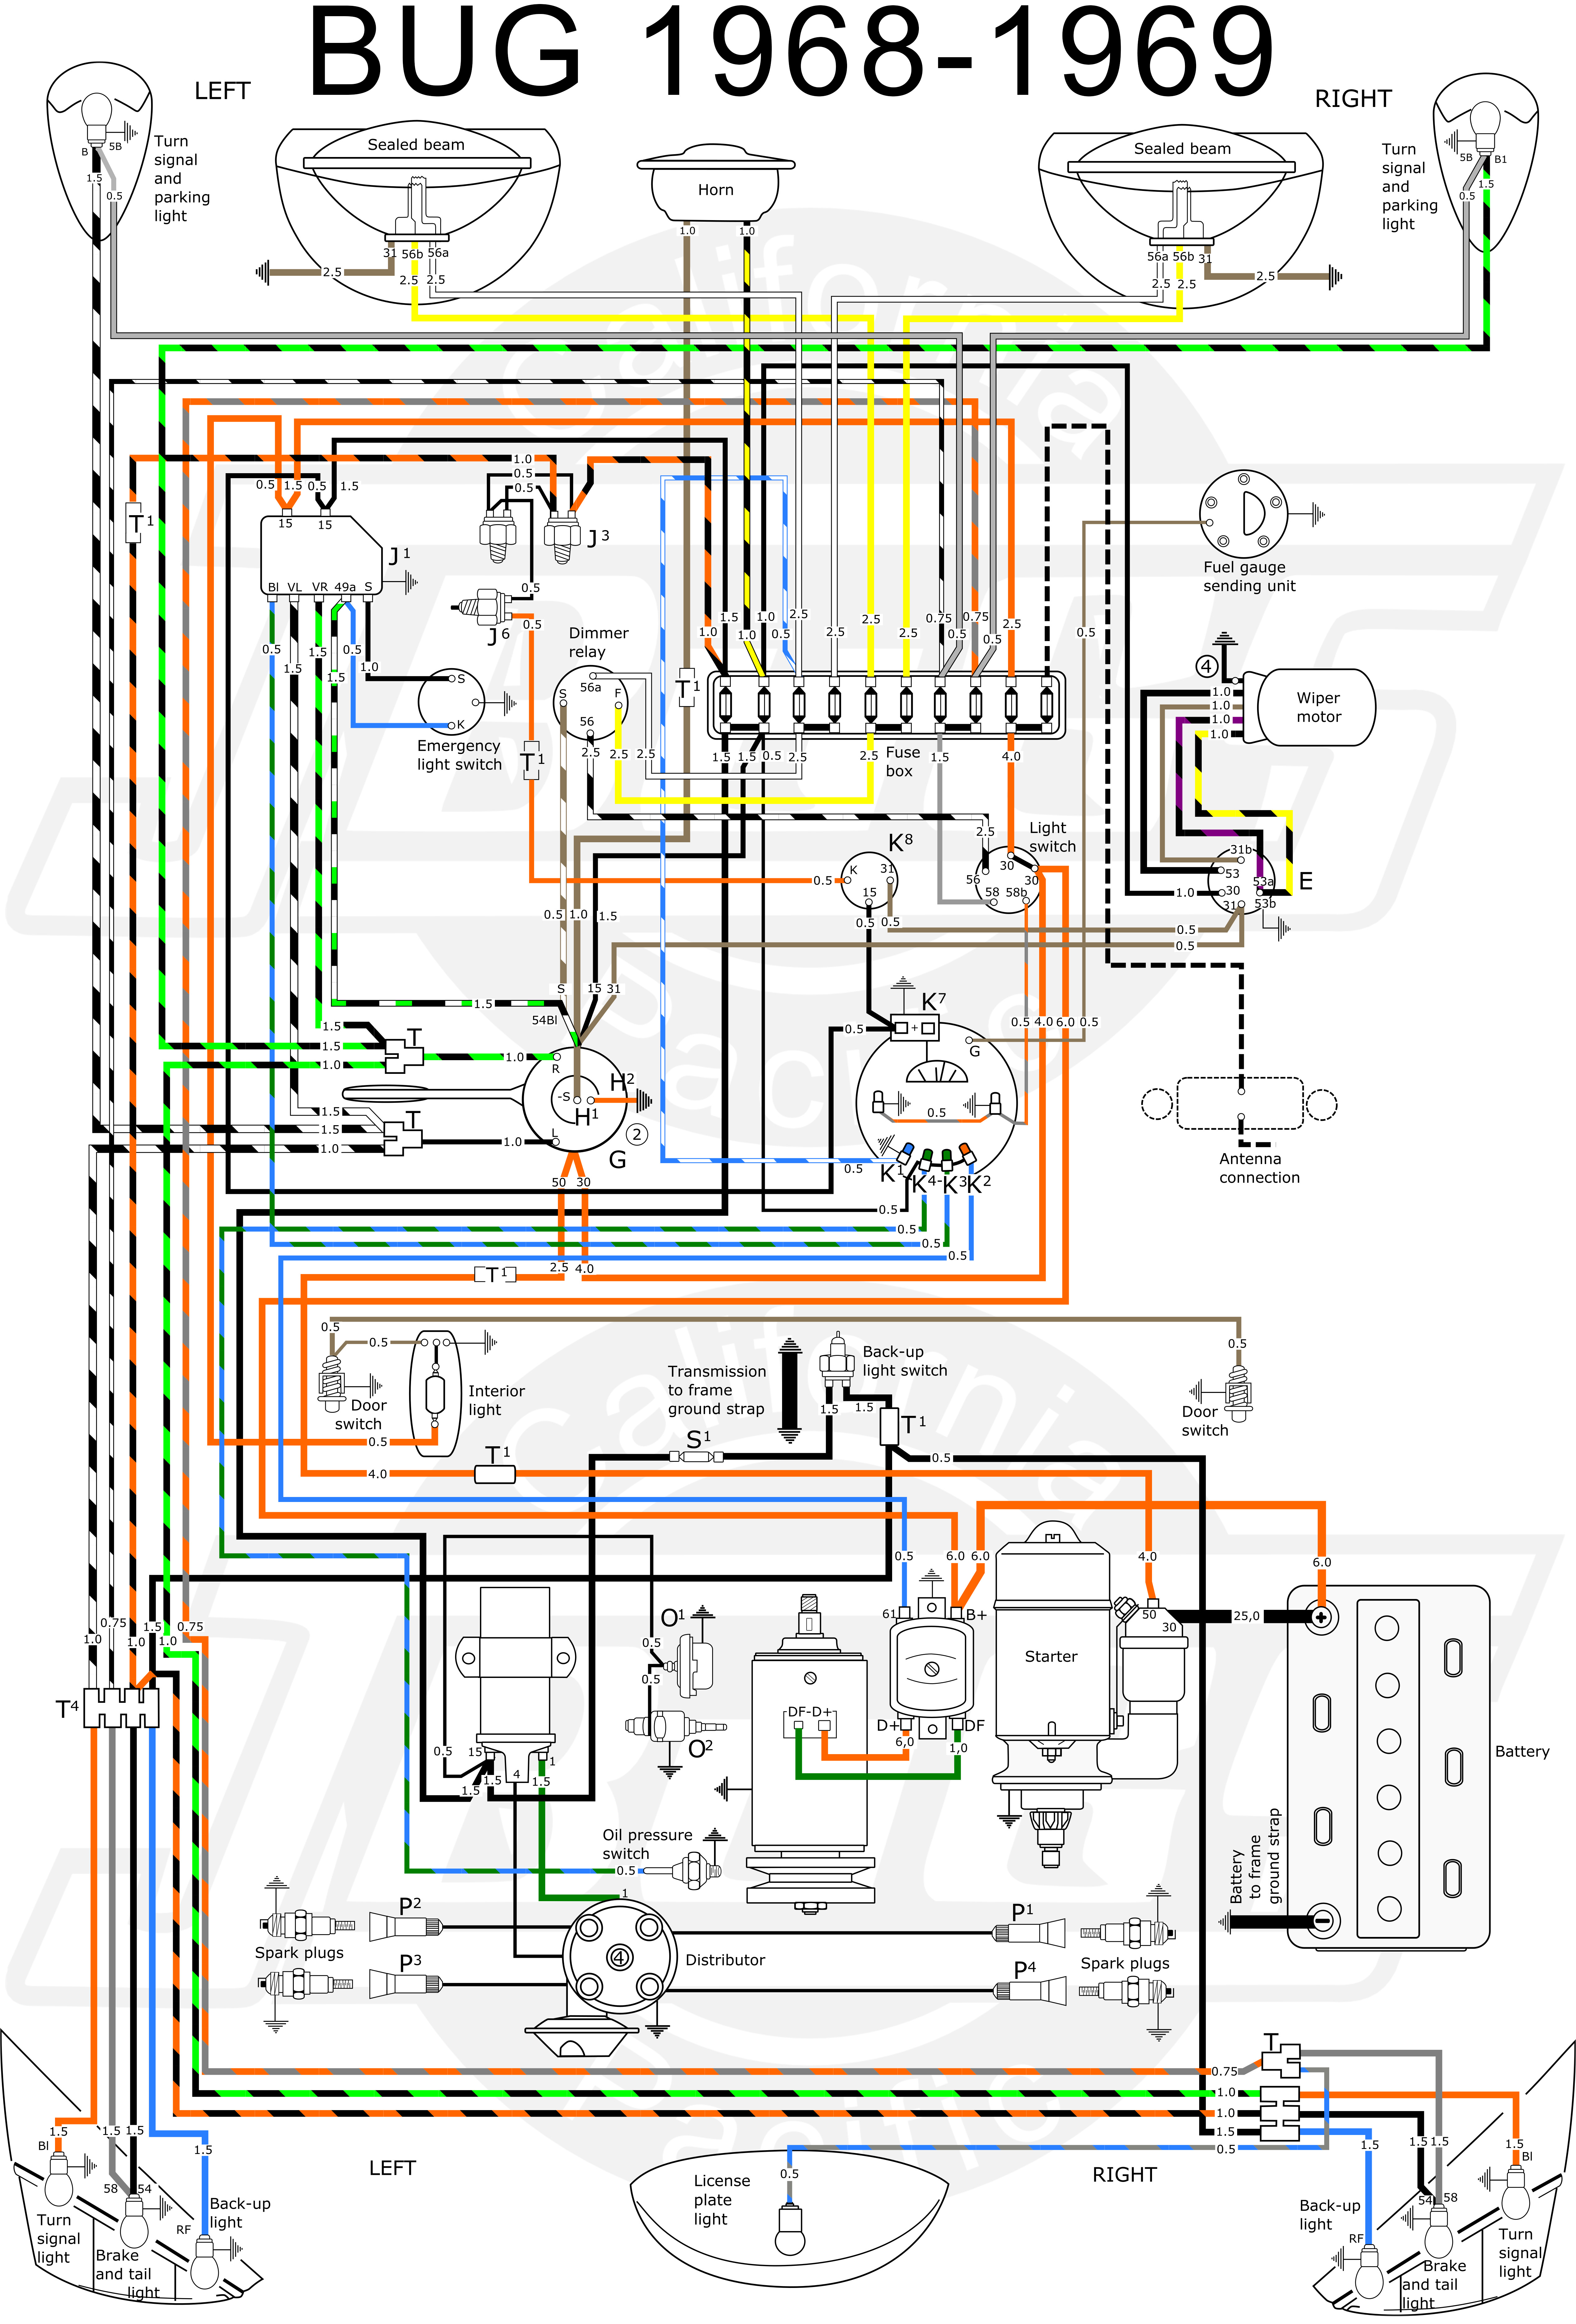 70 Vw Wiring Diagram - Free Vehicle Wiring Diagrams •  Beetle Wiring Diagram Lights on 1974 vw engine diagram, 74 beetle parts, 74 beetle solenoid, vw beetle diagram, 74 beetle seats, 74 beetle voltage regulator, 74 beetle exhaust, 74 beetle engine, 74 vw bug vacuum diagram, 74 beetle battery, 73 vw bug signal diagram,